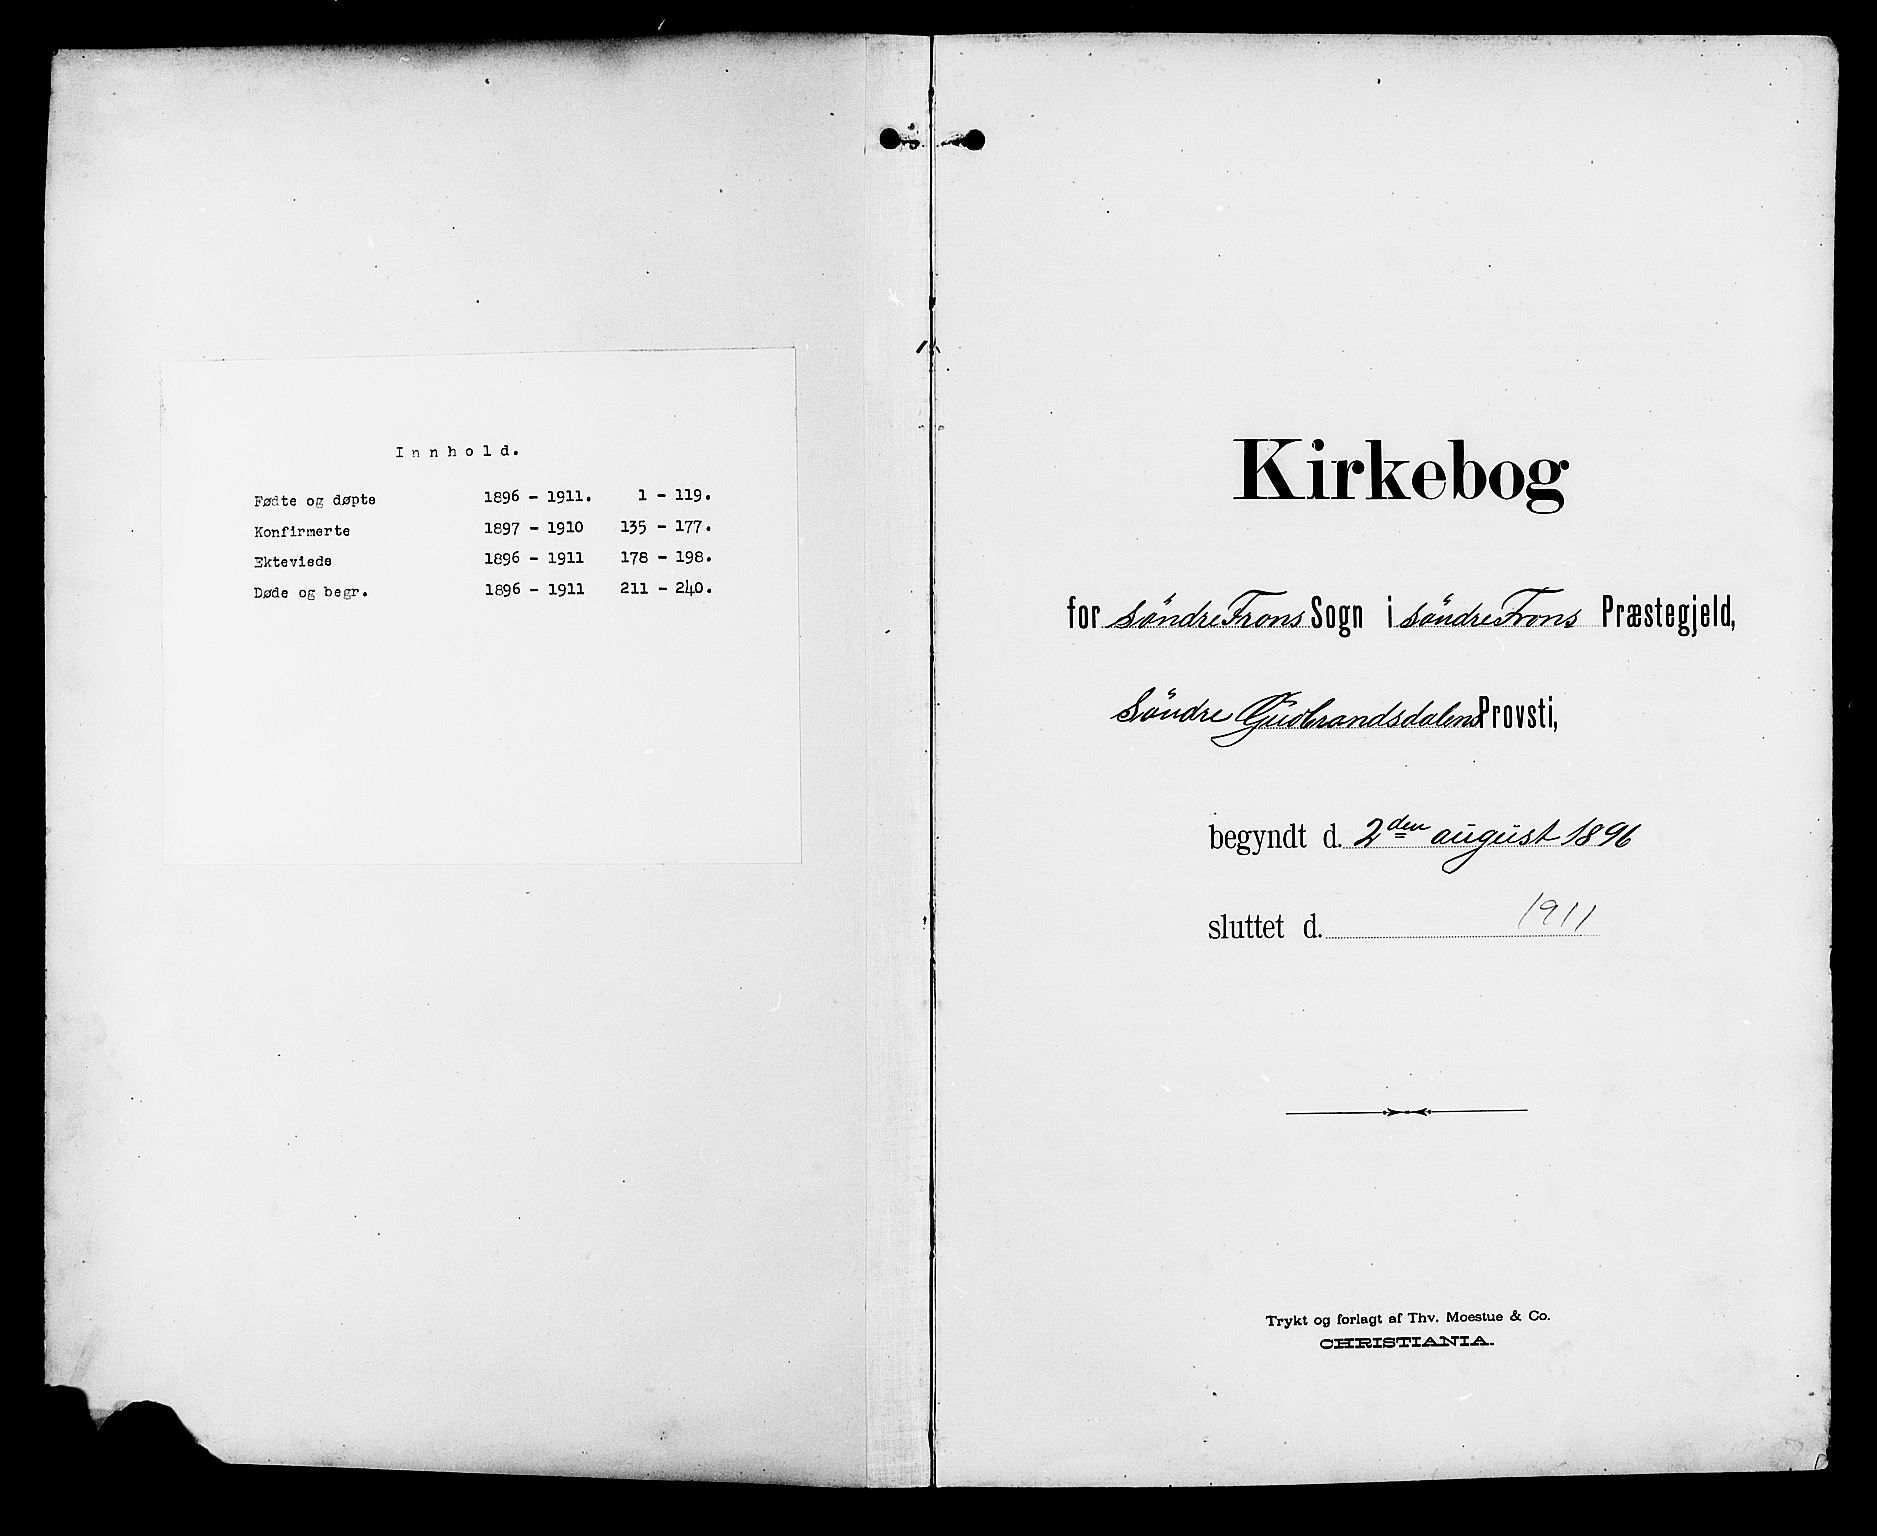 SAH, Sør-Fron prestekontor, H/Ha/Hab/L0004: Parish register (copy) no. 4, 1896-1911